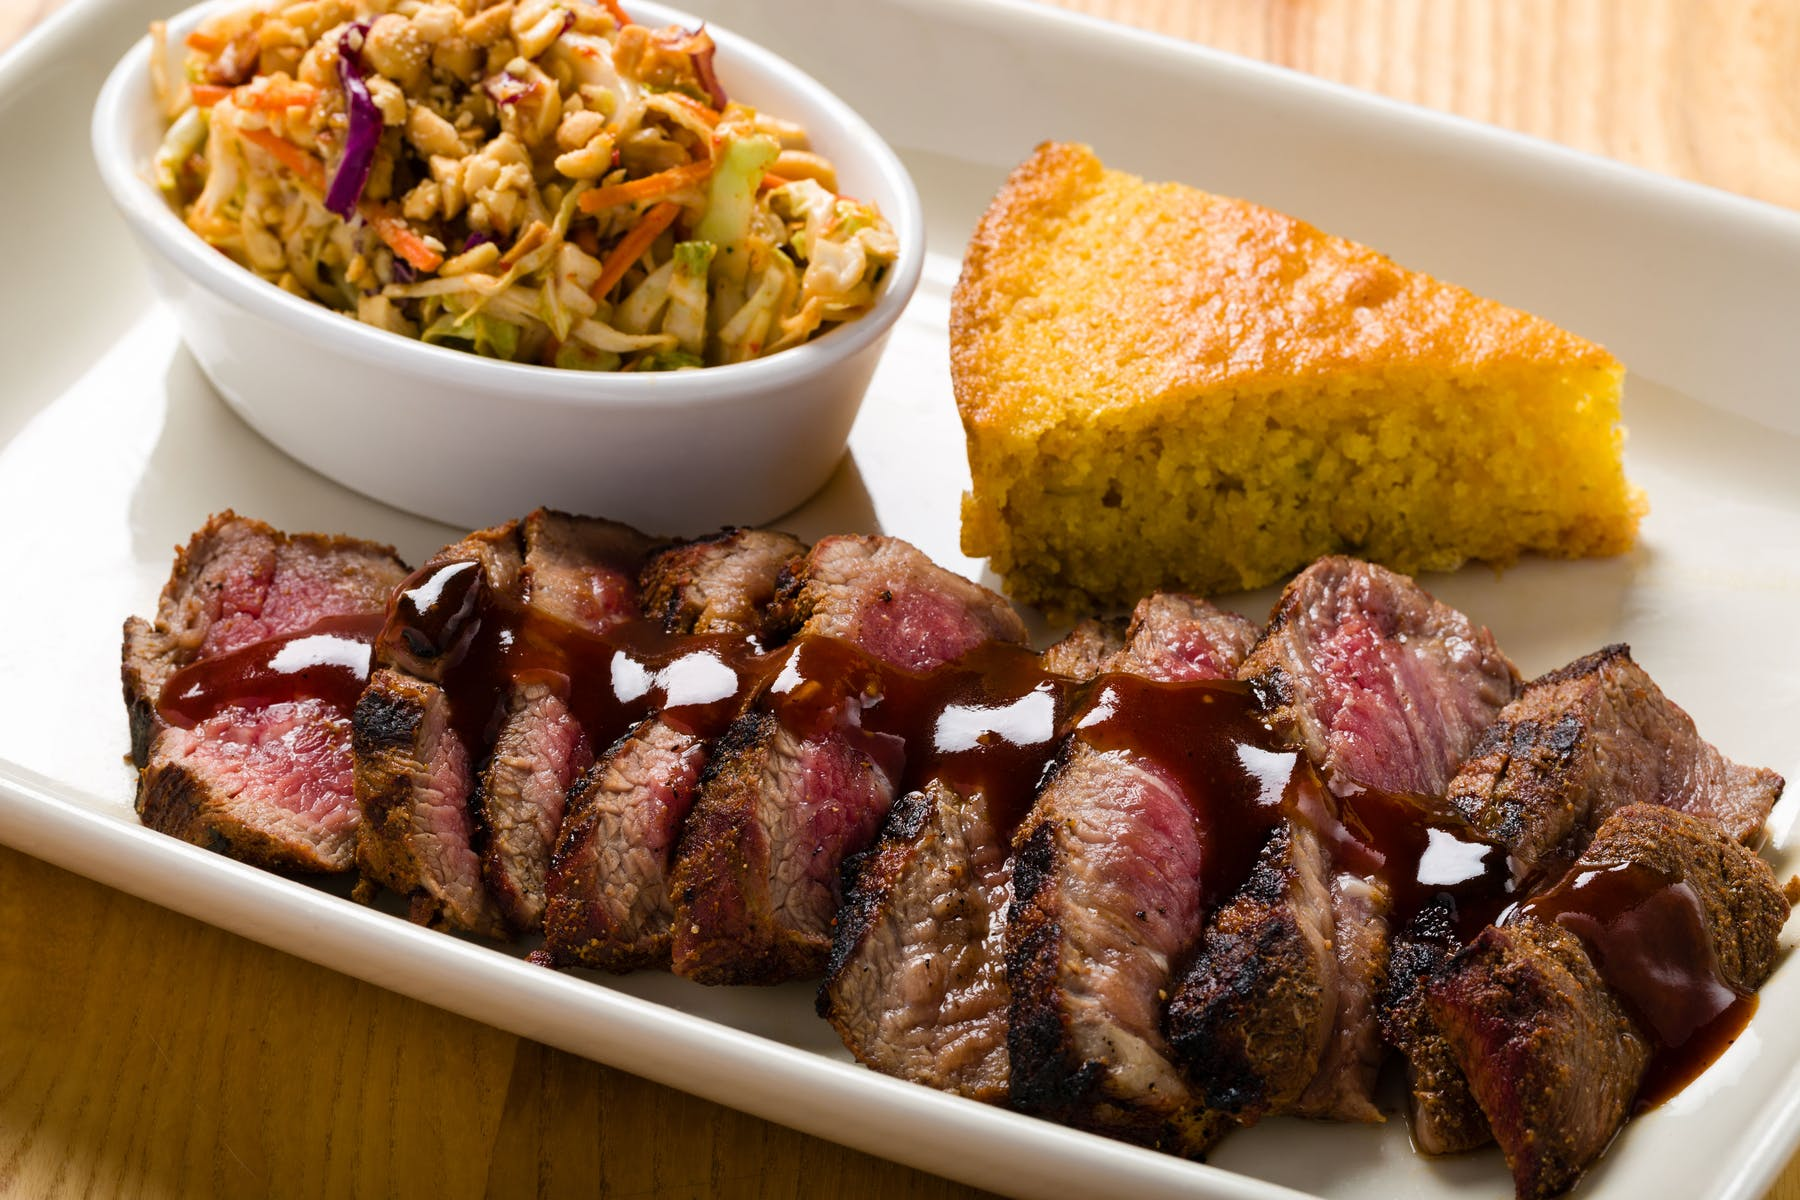 steak slices with corn bread and coleslaw